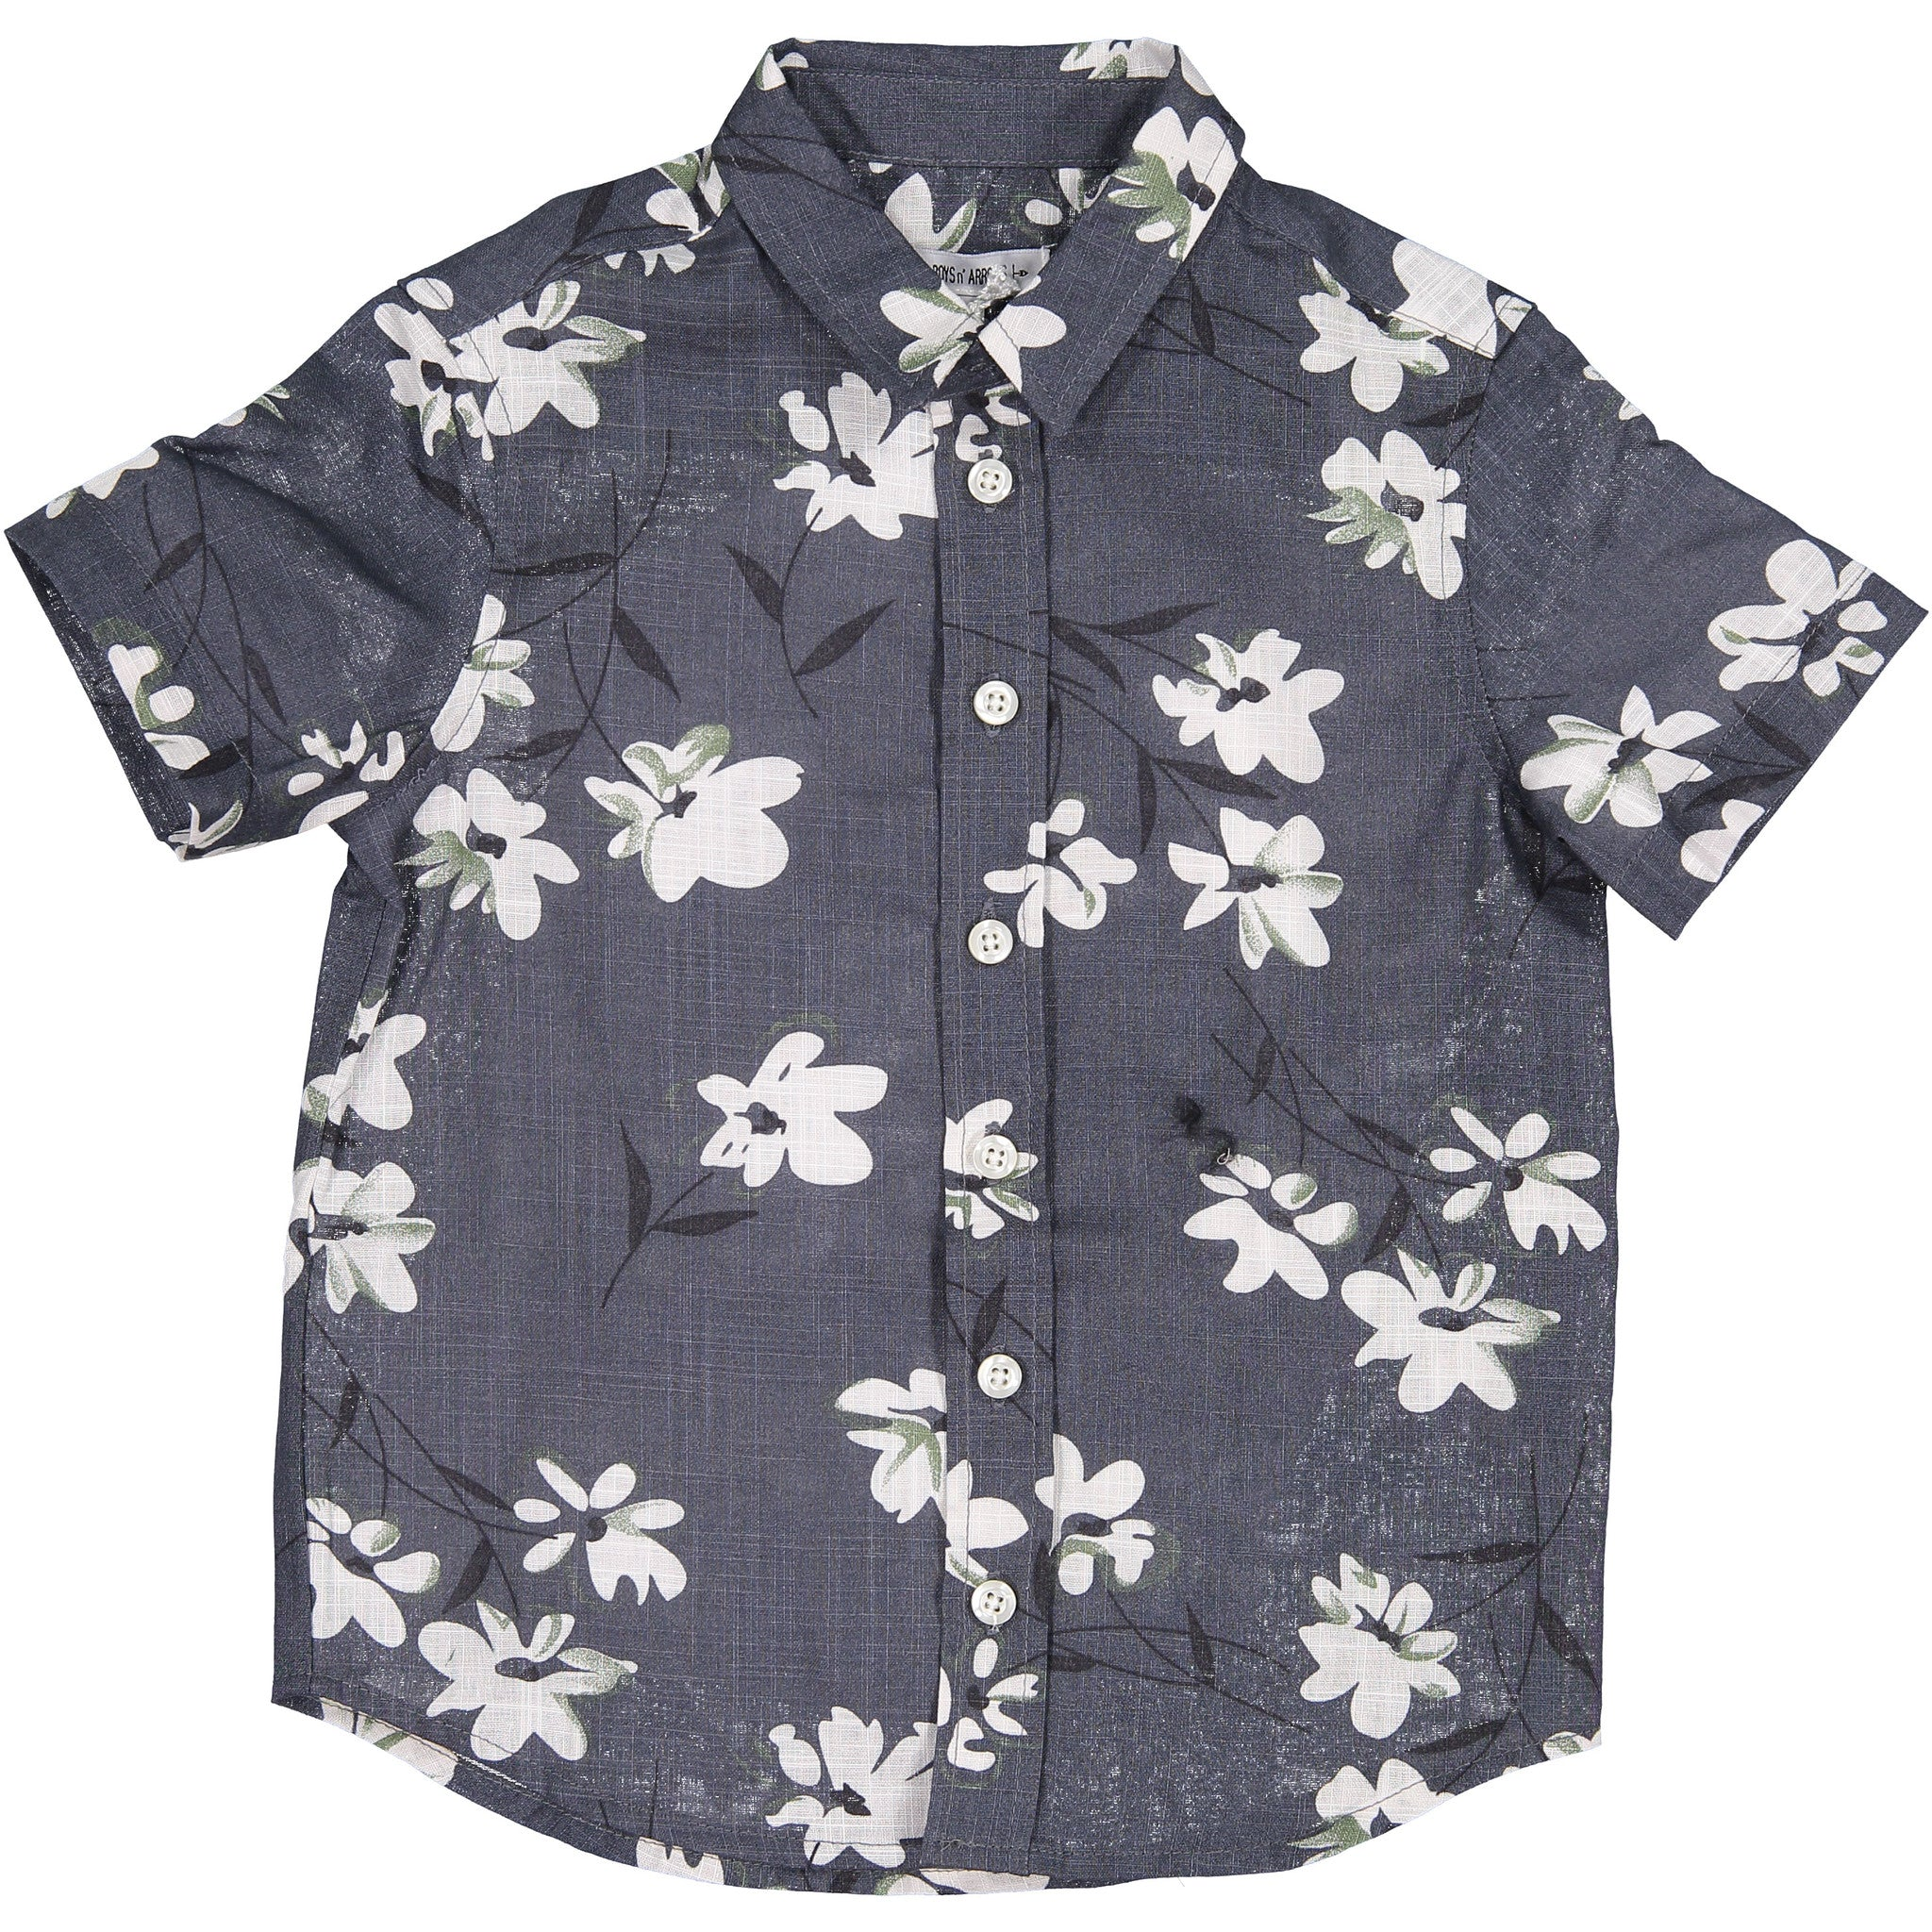 Boys & Arrows Chambray Floral Shirt